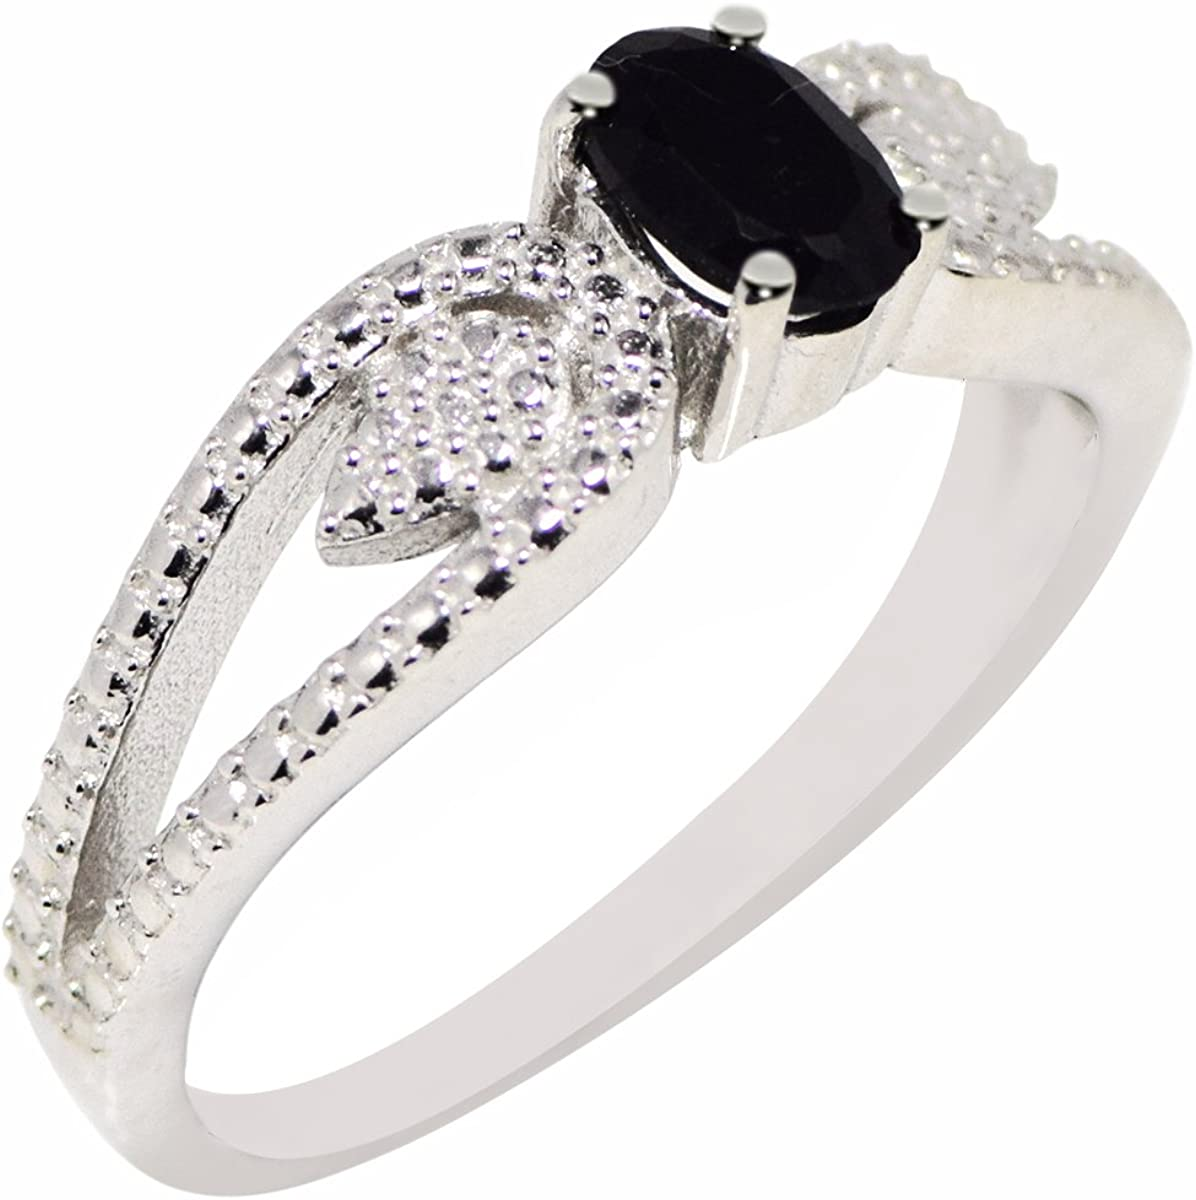 Black onyx gemstone 925 sterling silver wedding ring